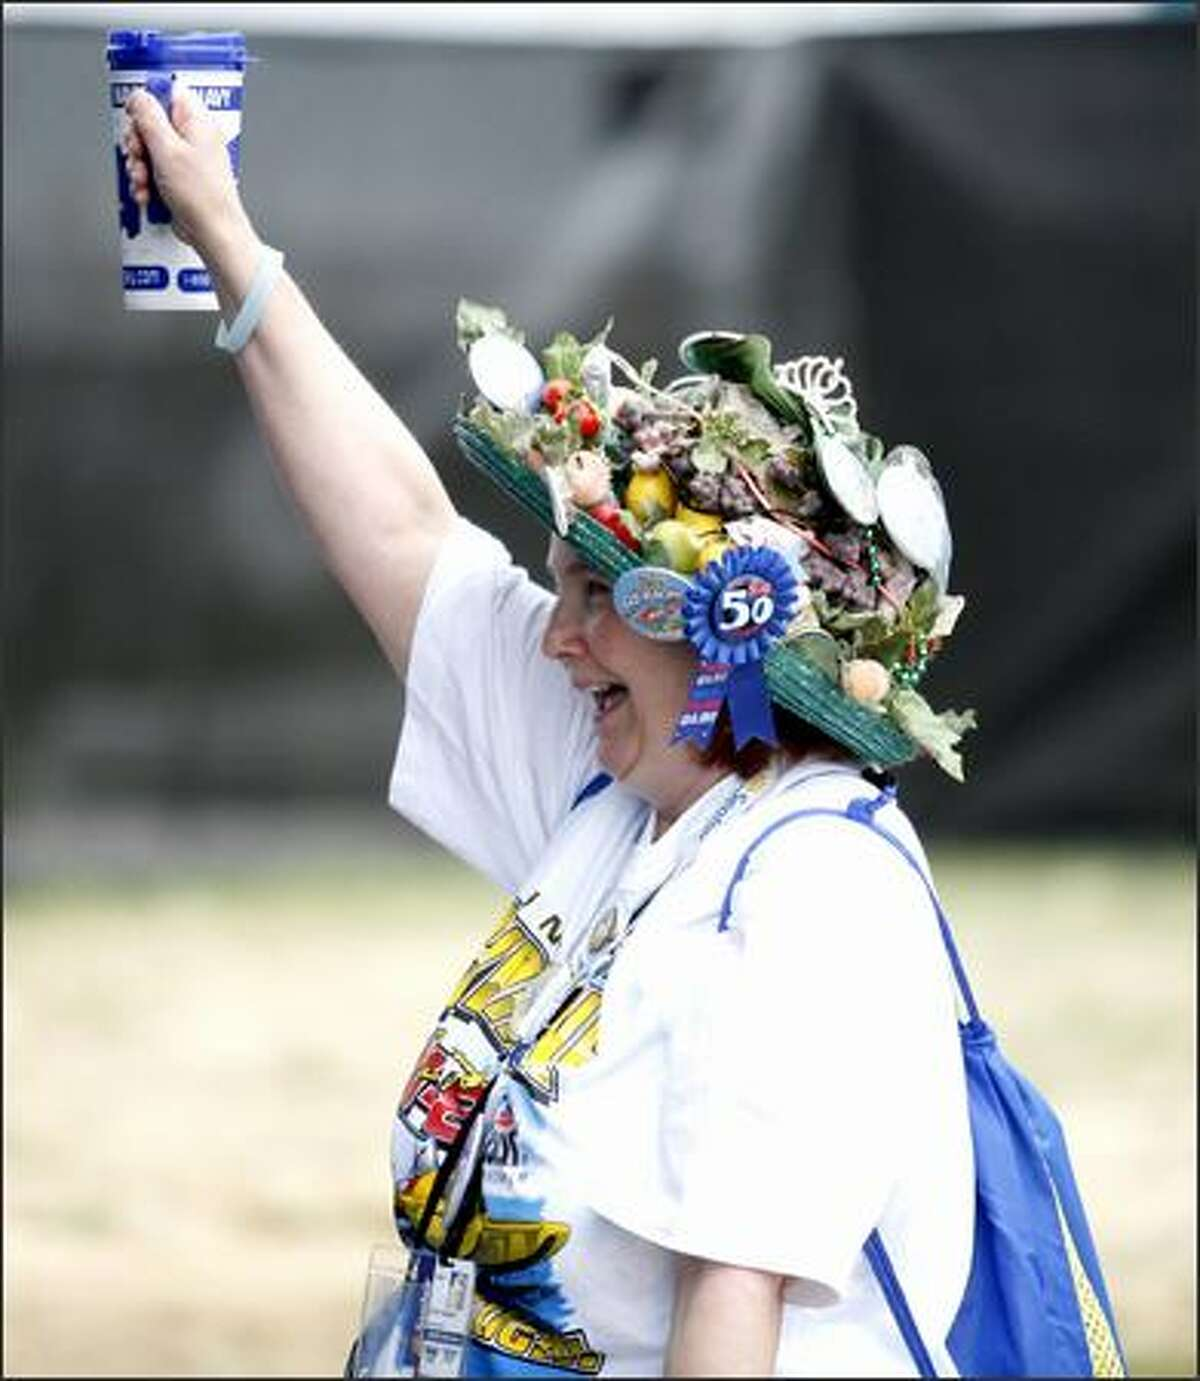 Beth Hughes and her hat named Carmen cheer for South by Northwest, the Navy rock band, at Seafair on Saturday.